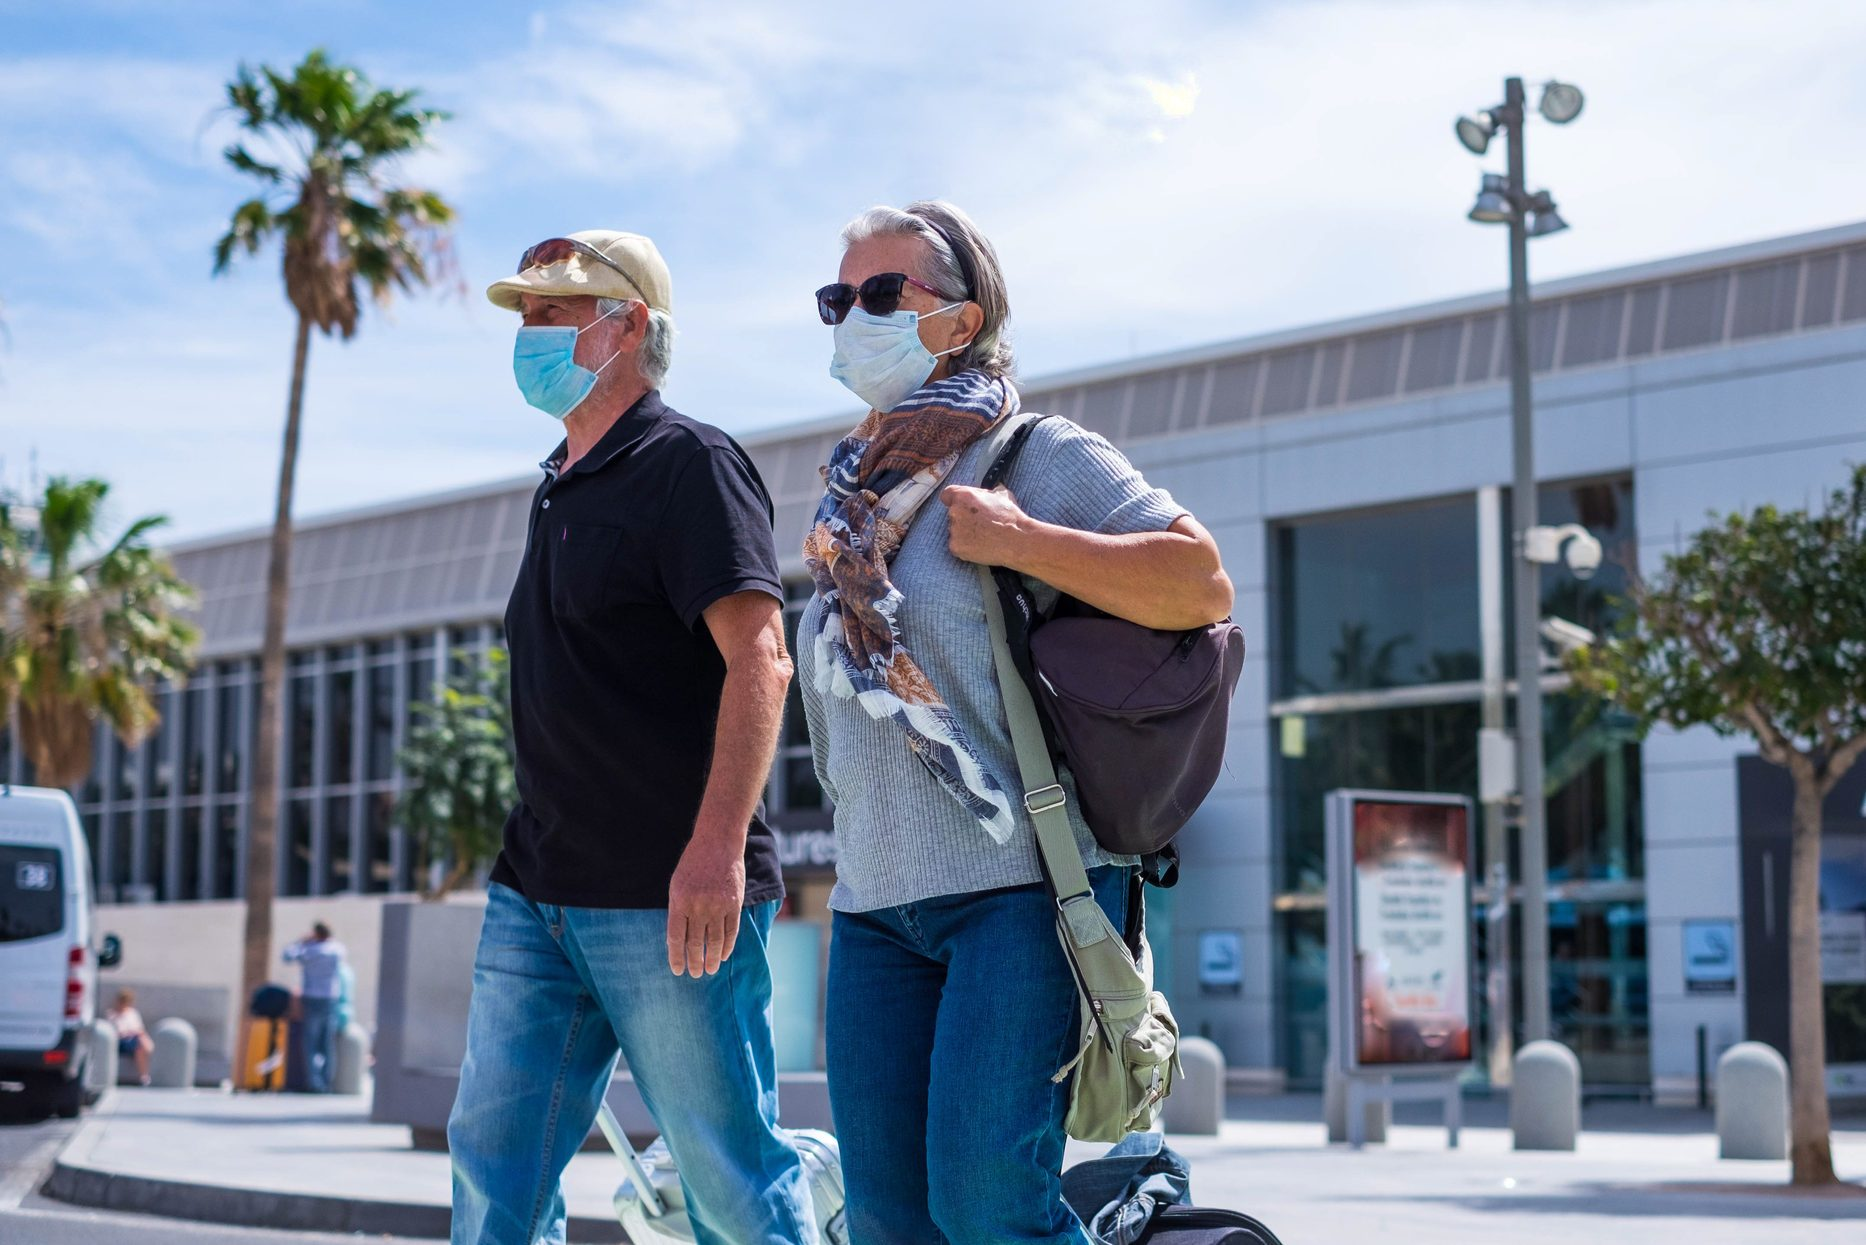 two senior walking with their baggage and wearing medical mask to prevent covid-19 or coronavirus or another type of virus or disease - safe travelers concept and lifestyle walking outdoor